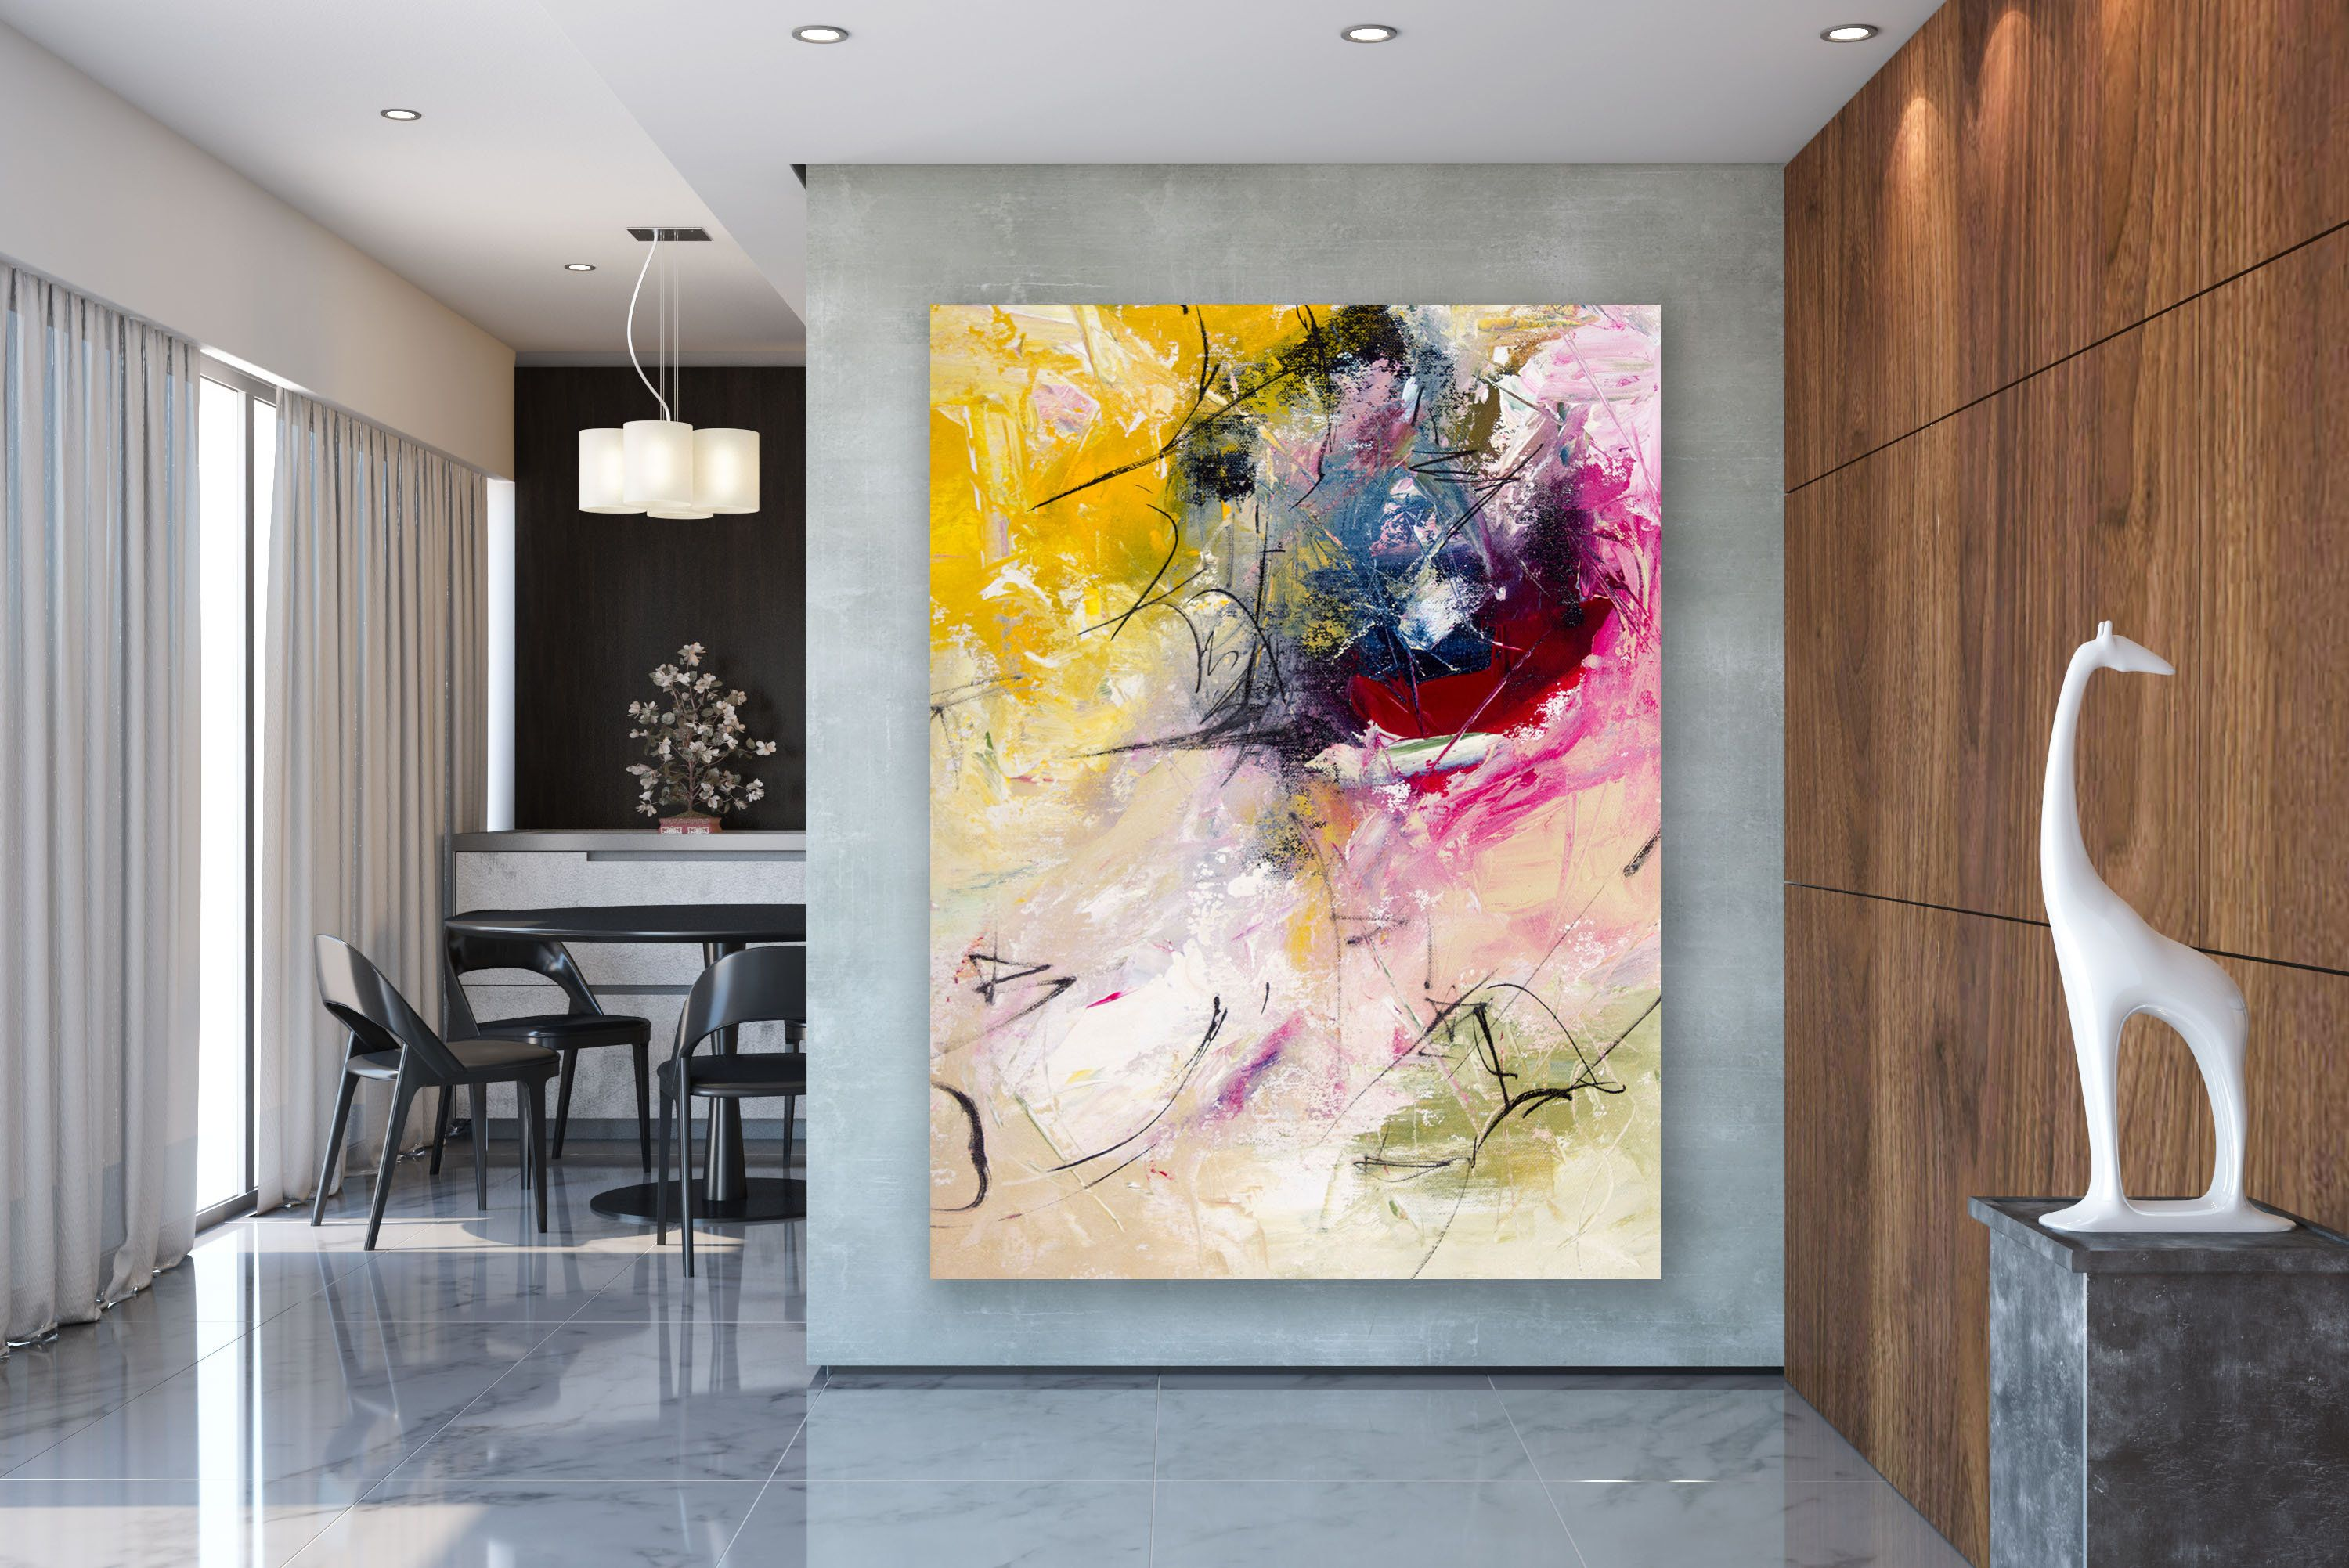 Large Modern Wall Art Painting Large Abstract Wall Art Acrylics Paintings Abstract Originals Bathroo Large Modern Wall Art Oversized Wall Art Abstract Wall Art